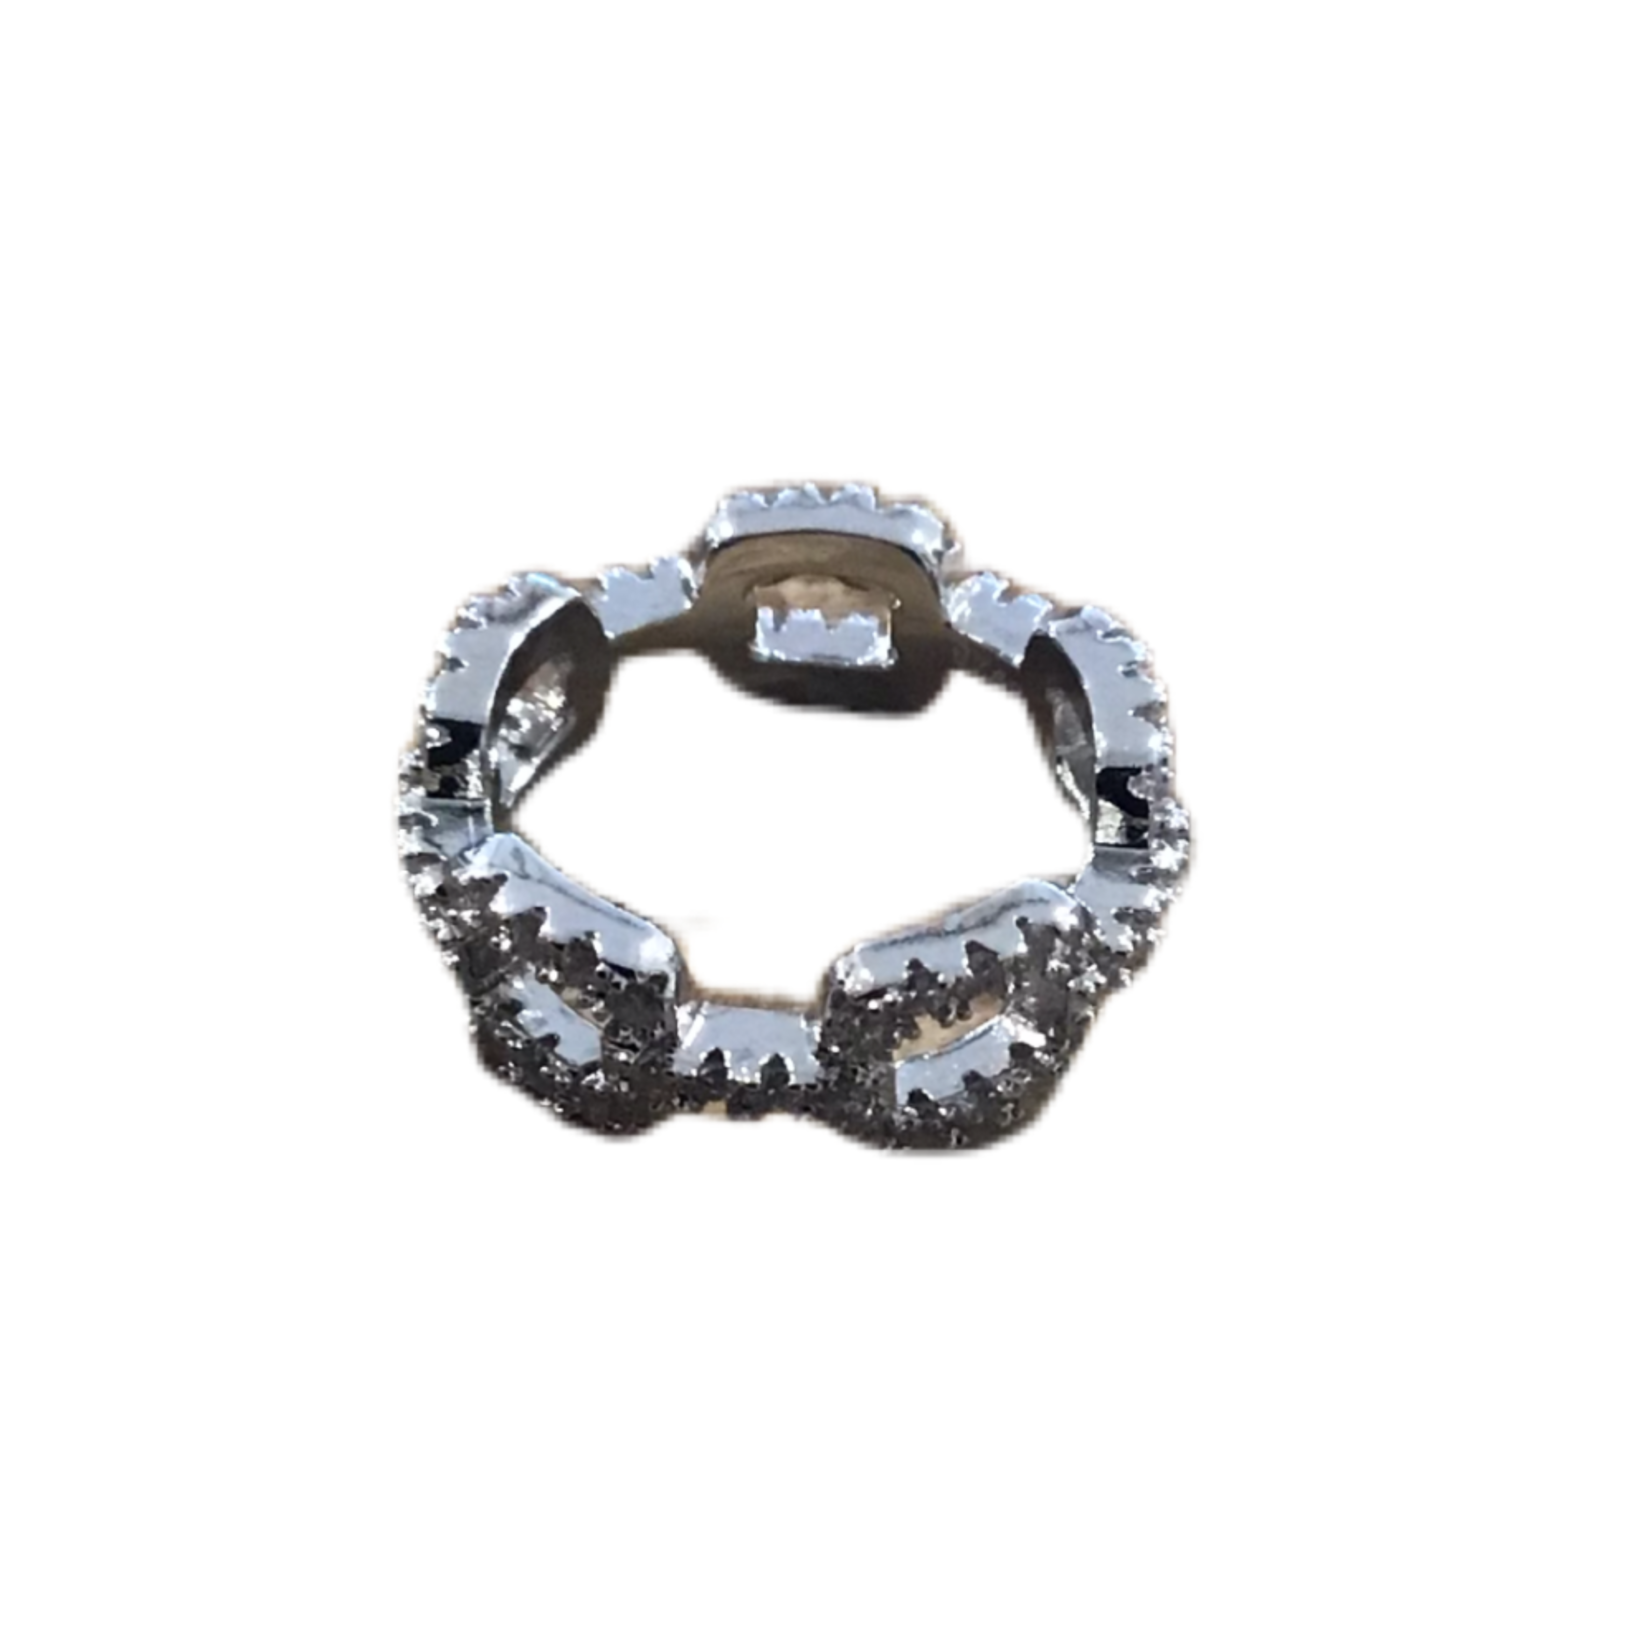 Wyld Blue Crystal Chain Ring